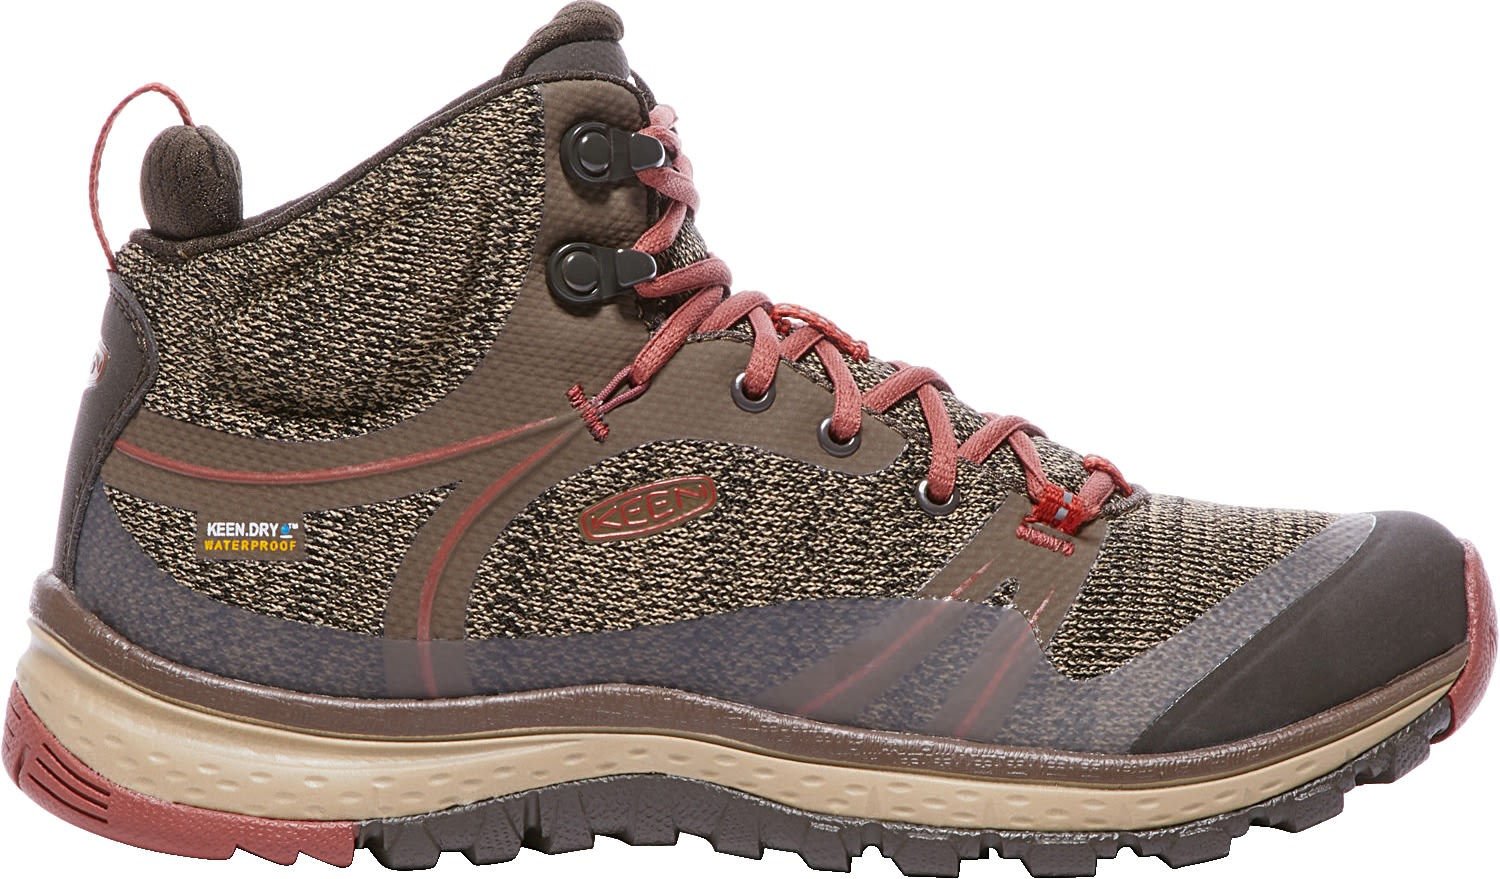 Keen Trail Shoes